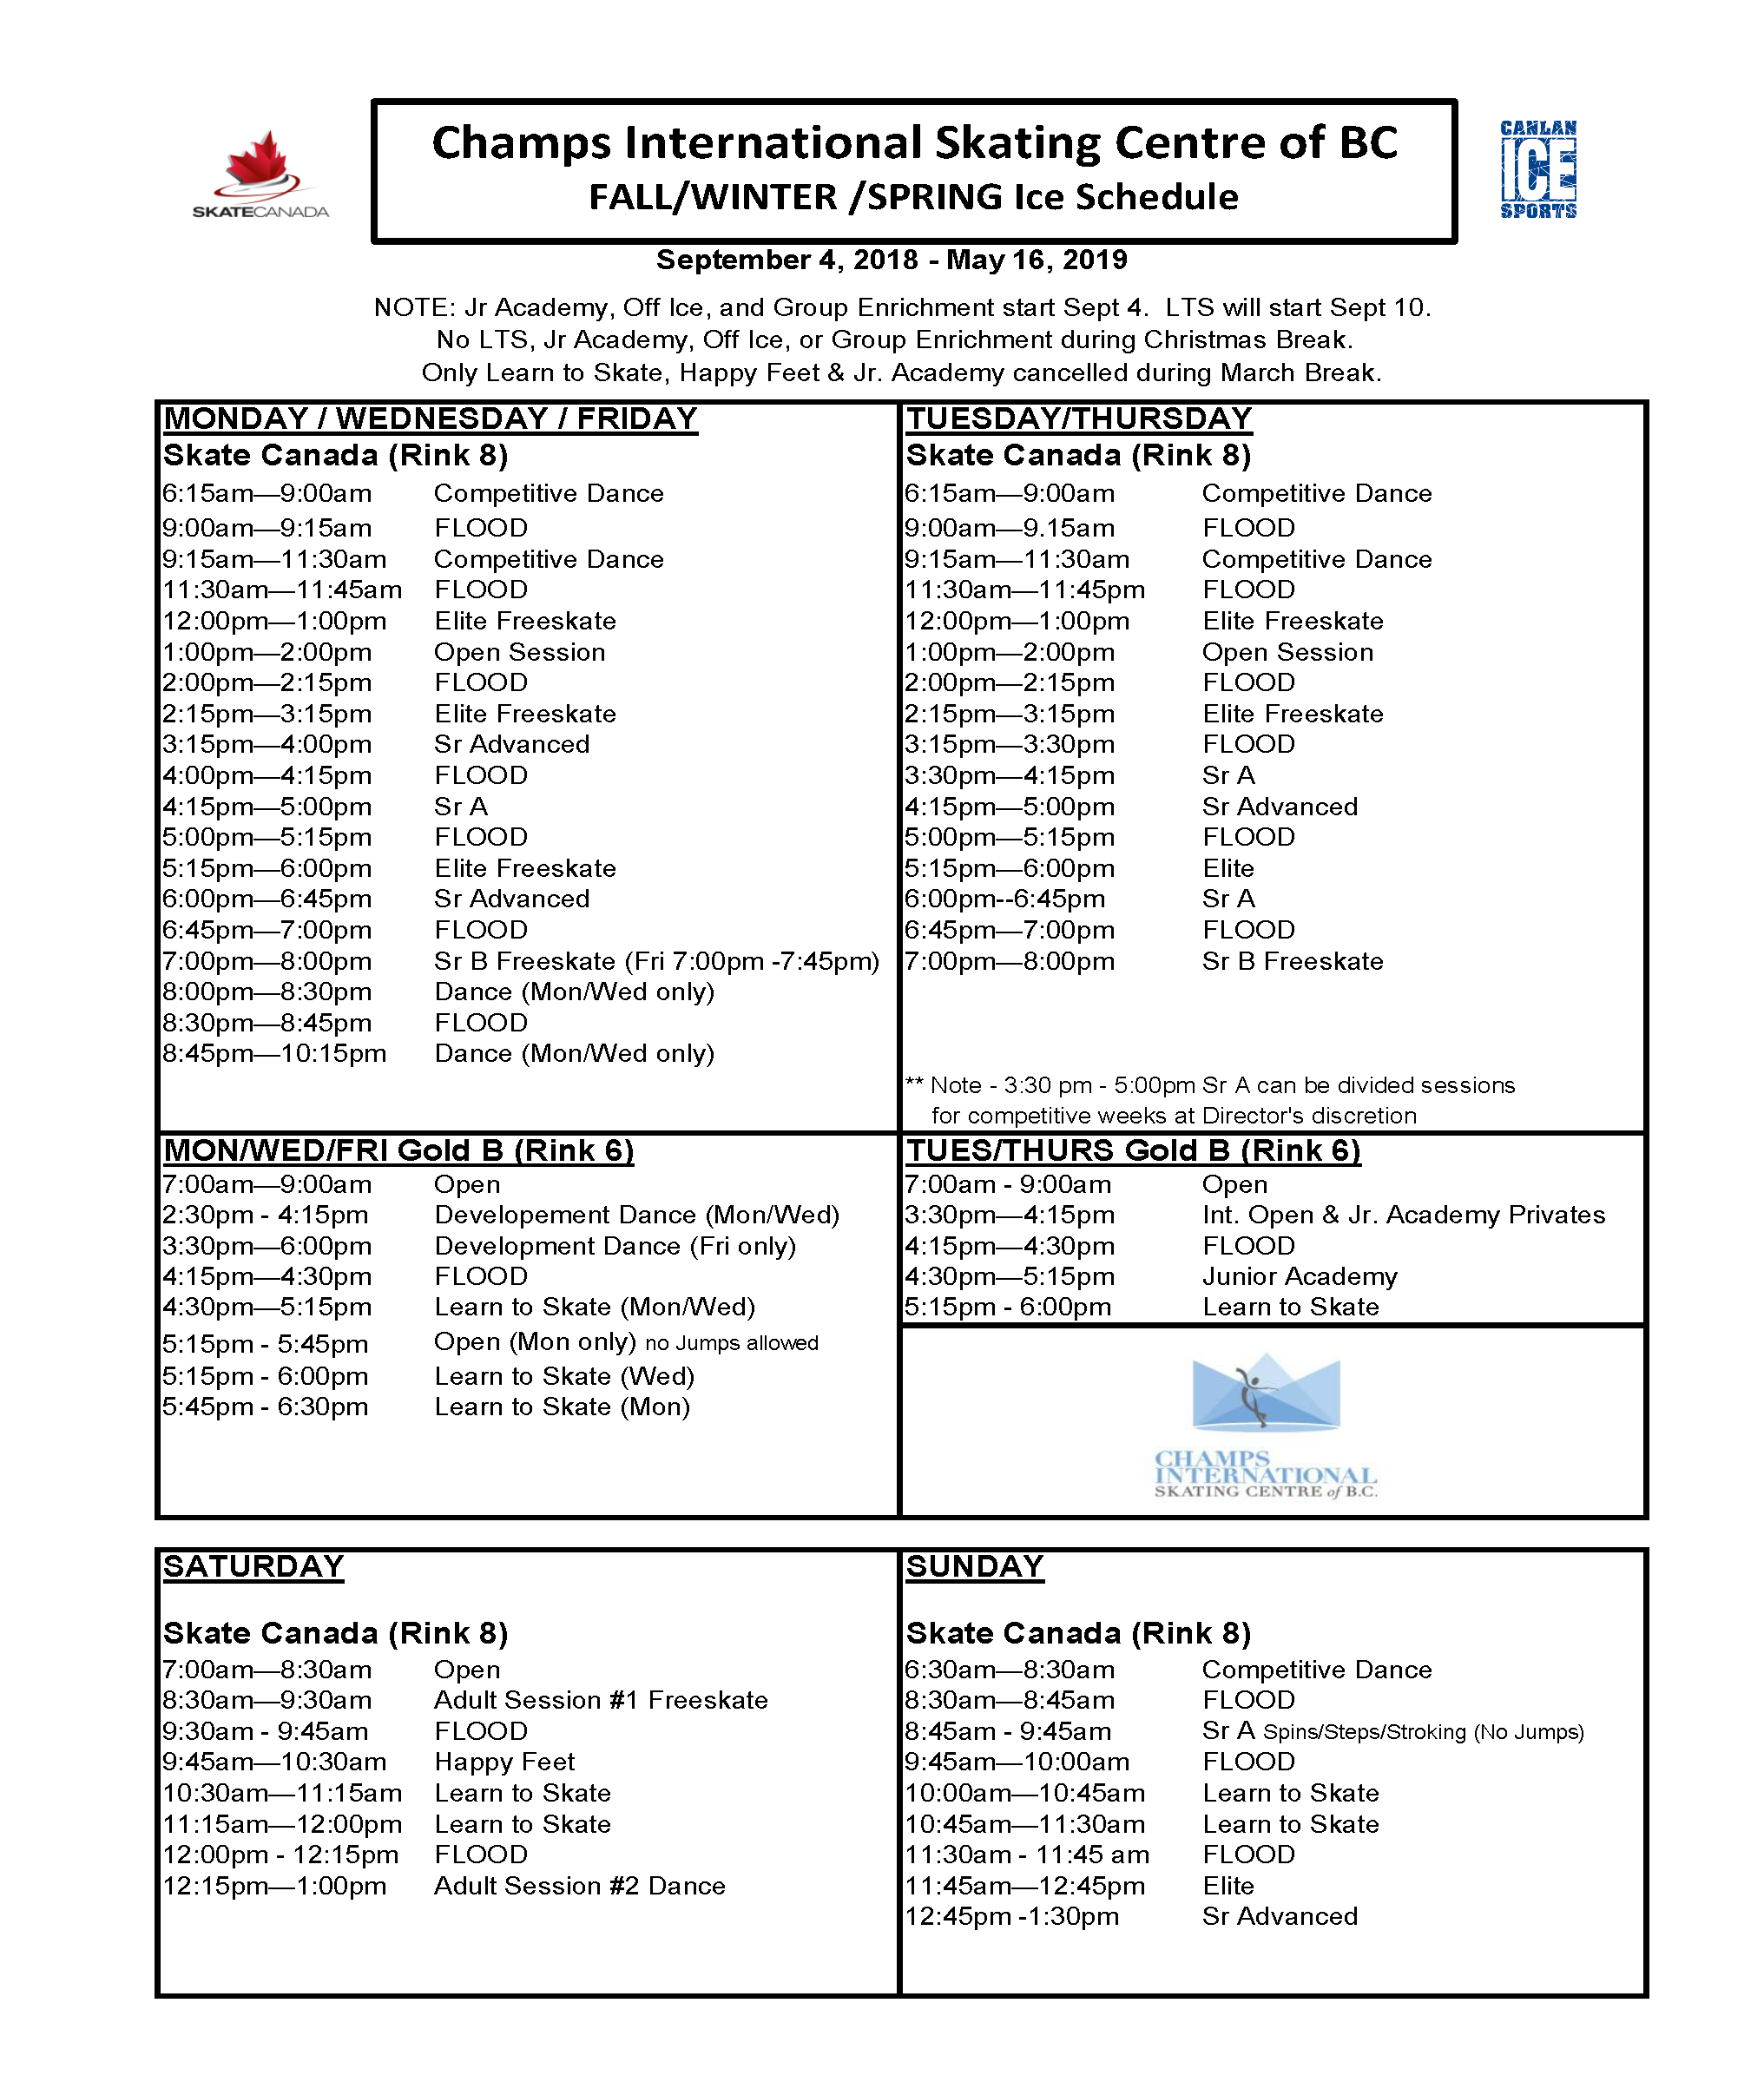 FWS2018-2019_Schedule_Page_1.png